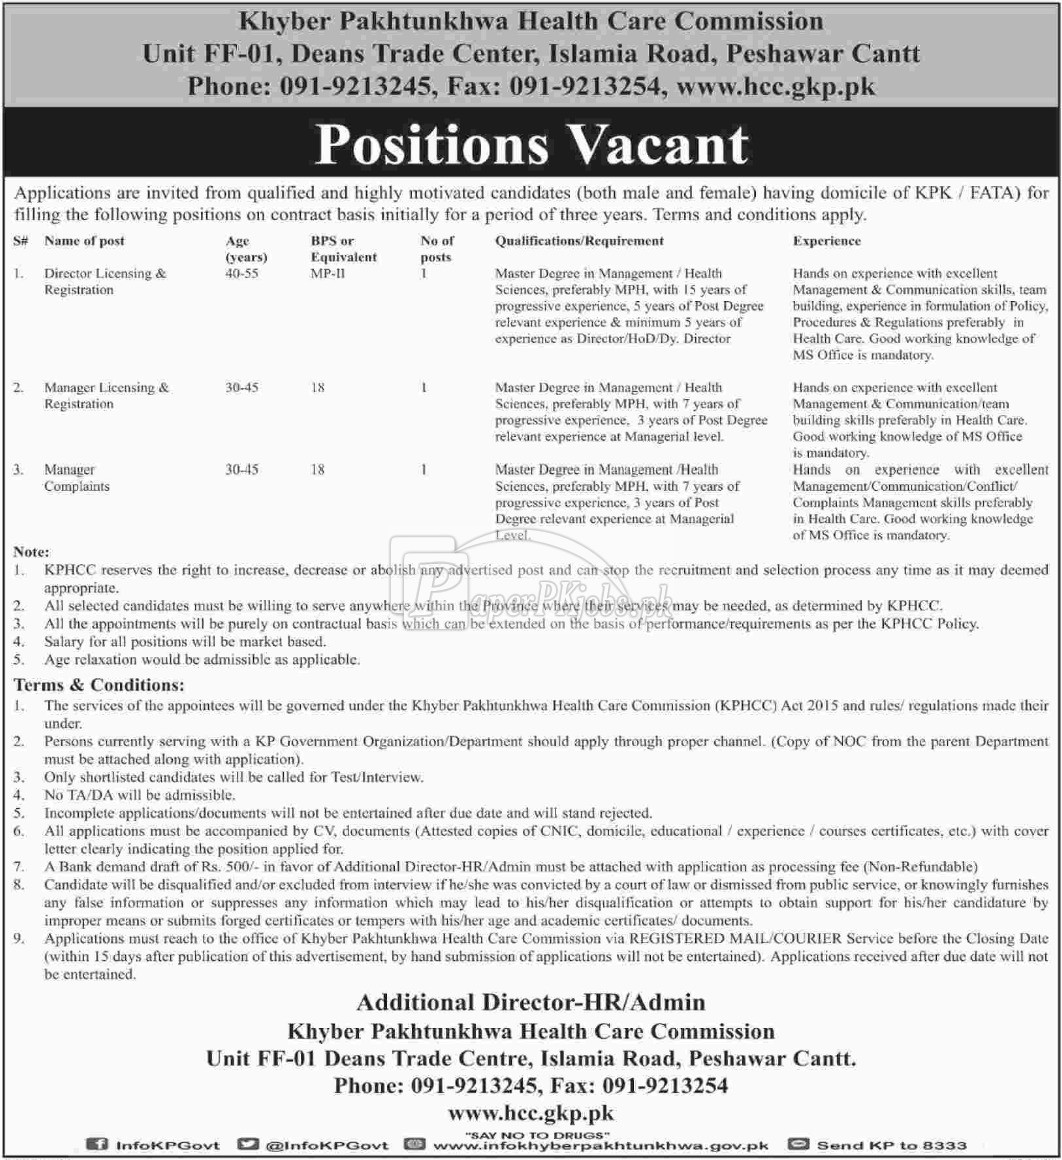 Khyber Pakhtunkhwa Health Care Commission KPHCC Jobs 2018